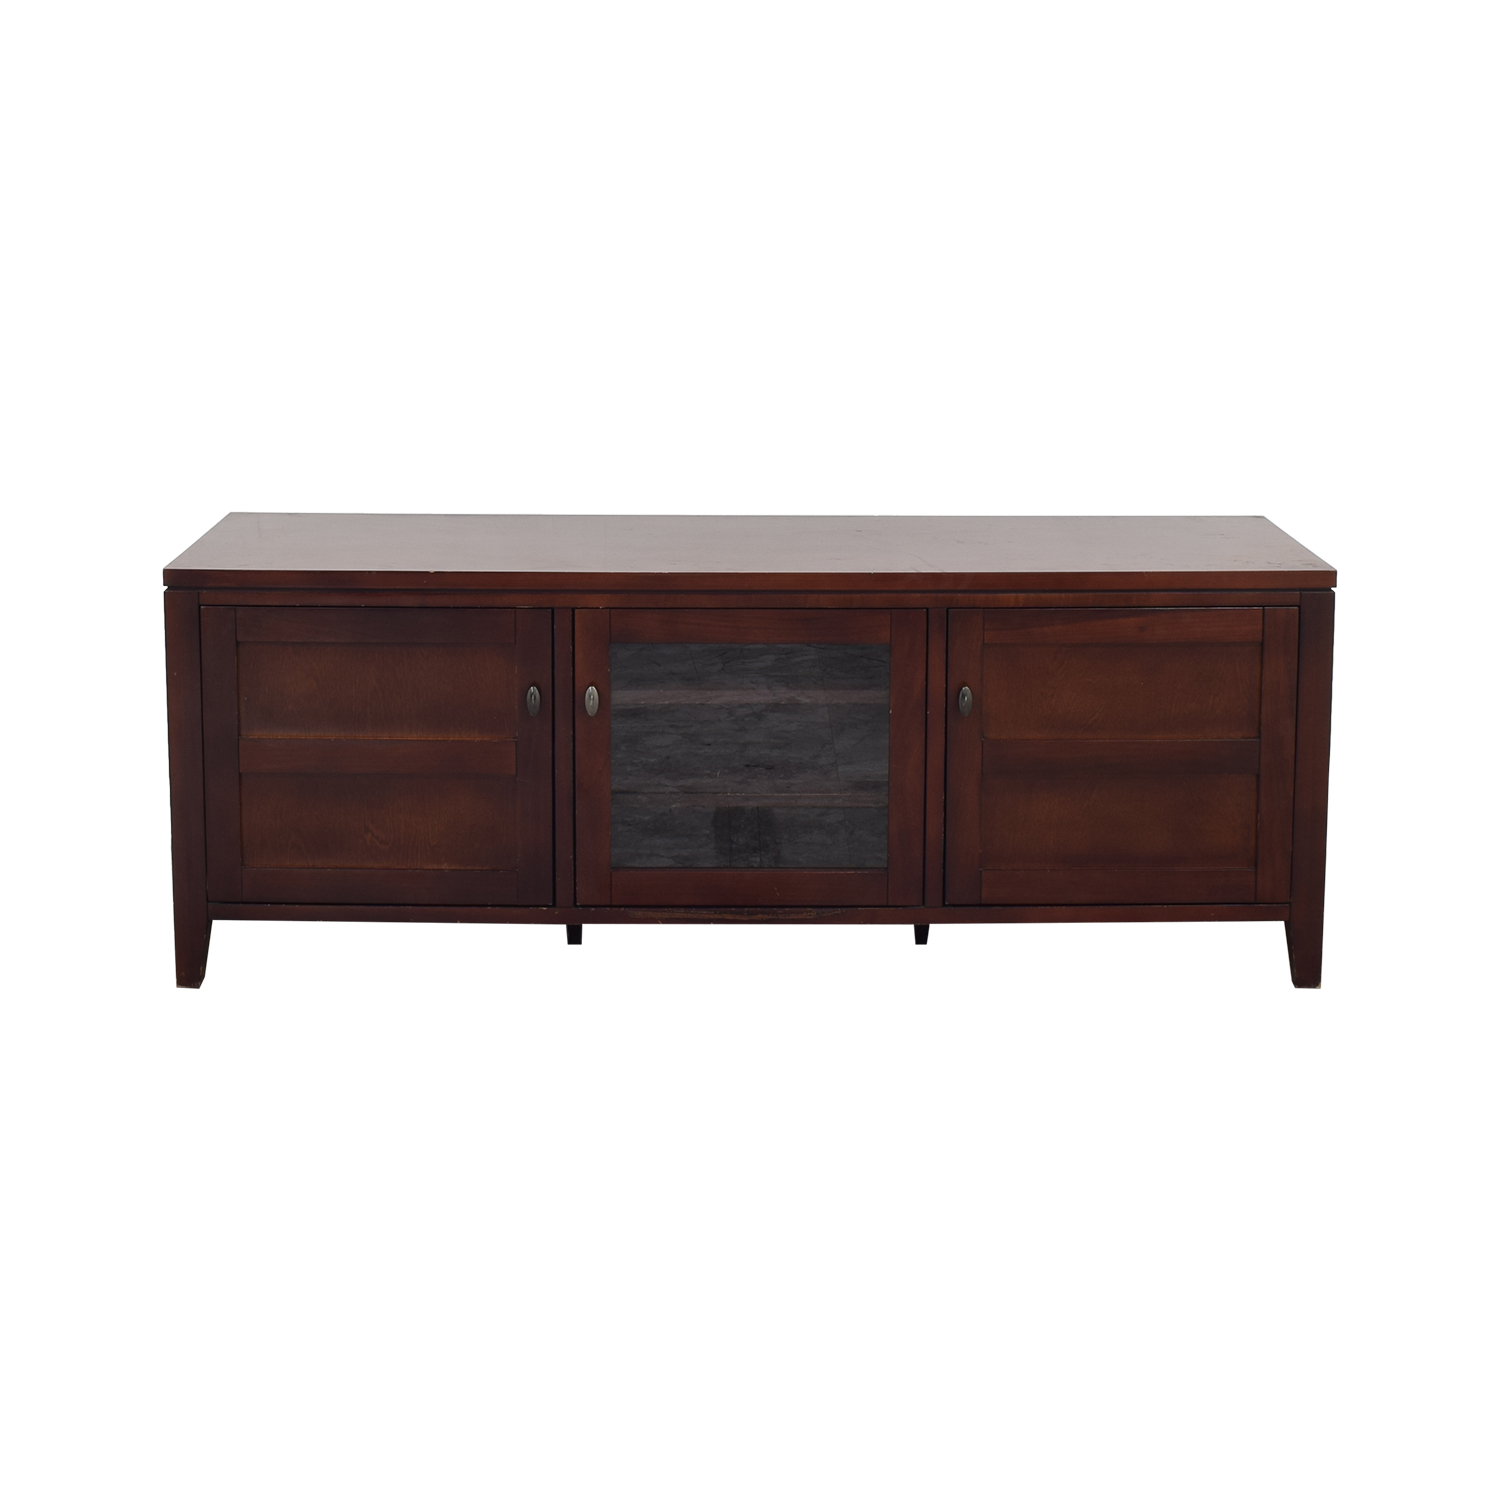 shop Crate & Barrel Crate & Barrel Media Console with Cabinets online